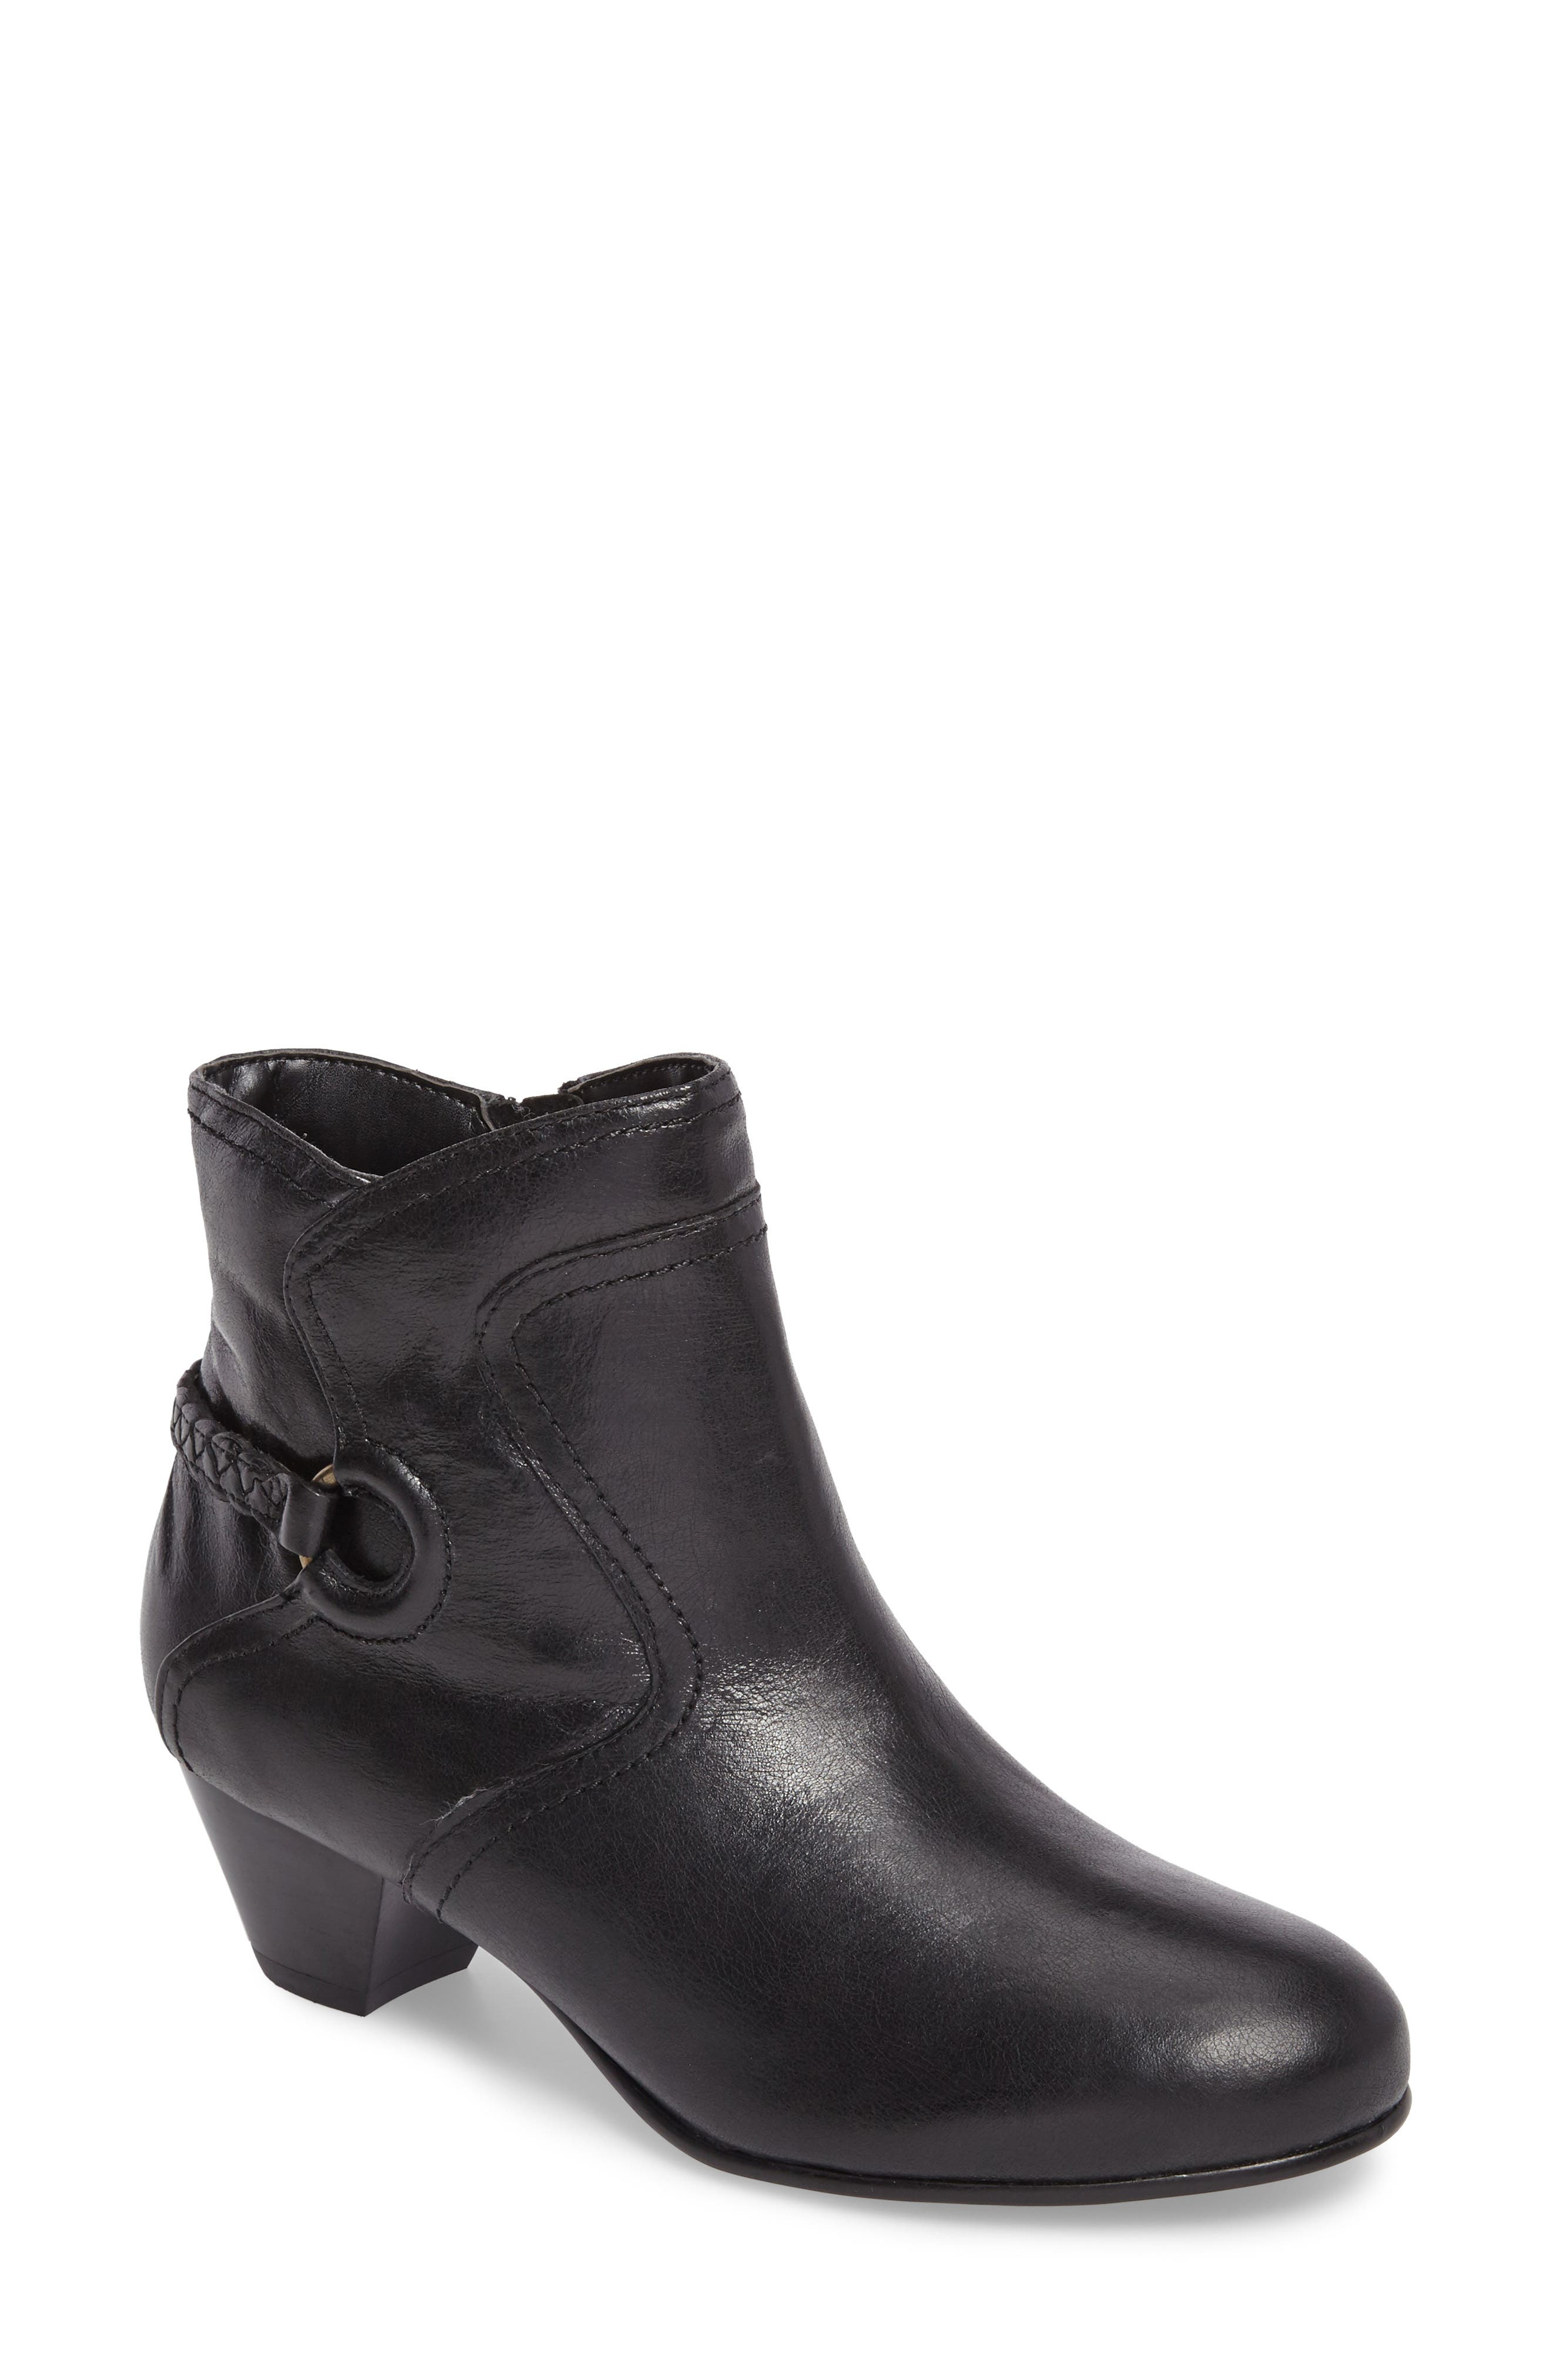 David Tate Women's Chica Ankle Boot